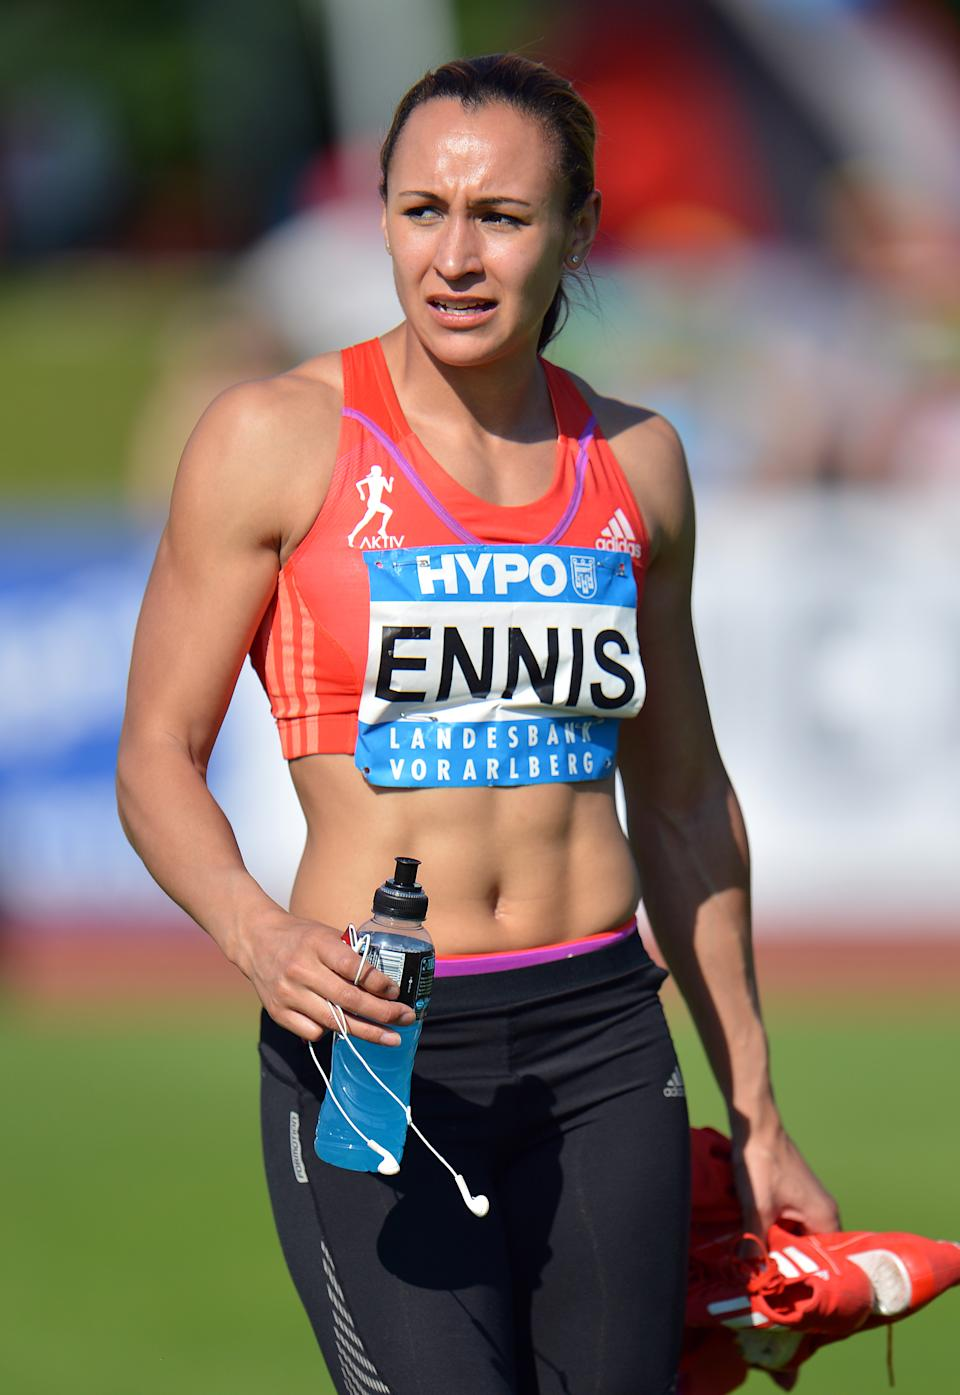 Great Britian's Jessica Ennis leaves the stadium after the 200-meter race at the women's heptathlon at the Hypo Meeting in Goetzis, Austria, on Saturday, May 26, 2012. (AP Photo/Kerstin Joensson)